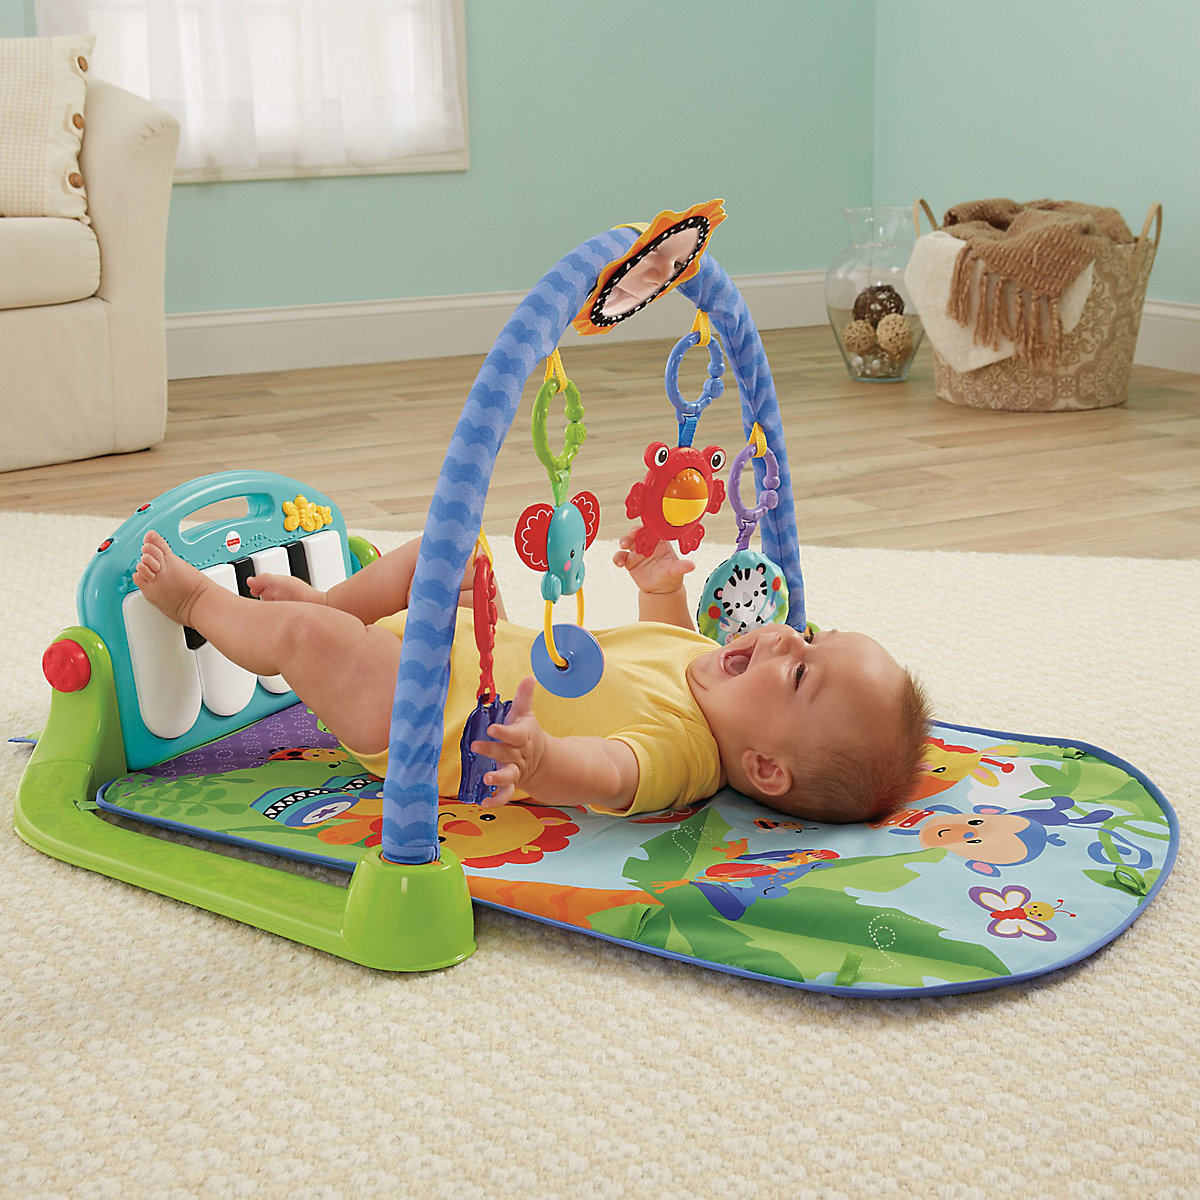 Play Mats FISHER-PRICE 3399157 Play Carpet Mat Developmental Children Educational Busy Toys for boys girls Baby Mat кулон mitya veselkov микрофон в бронзе